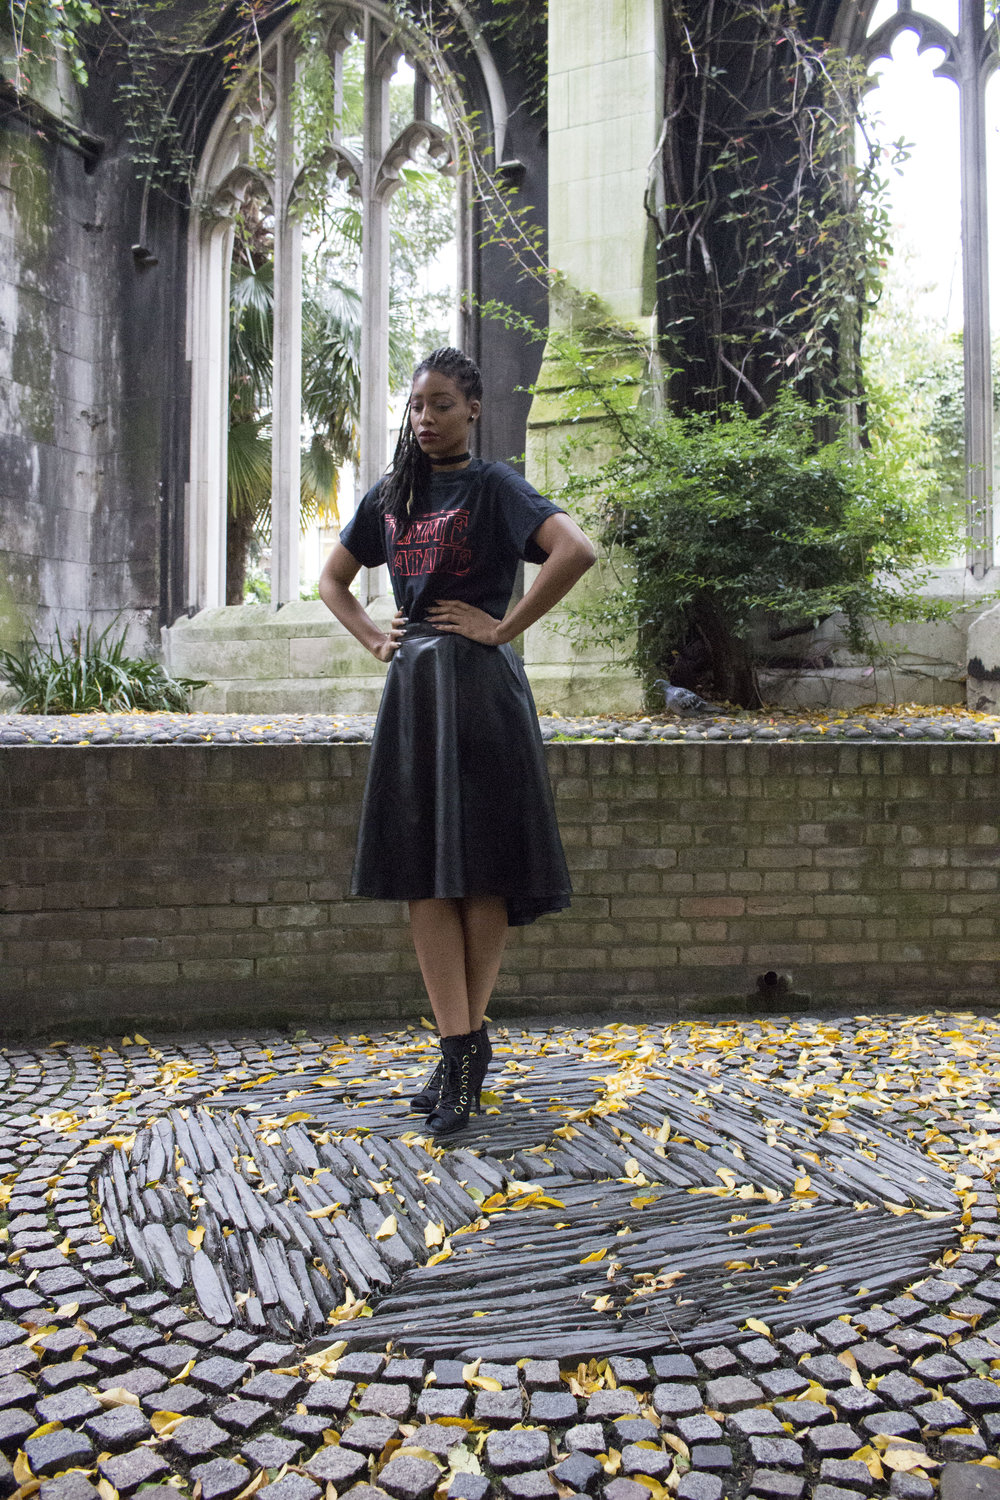 Black femme fatale t shirt black skirt black boots black choker for Autumn Winter 13.jpg